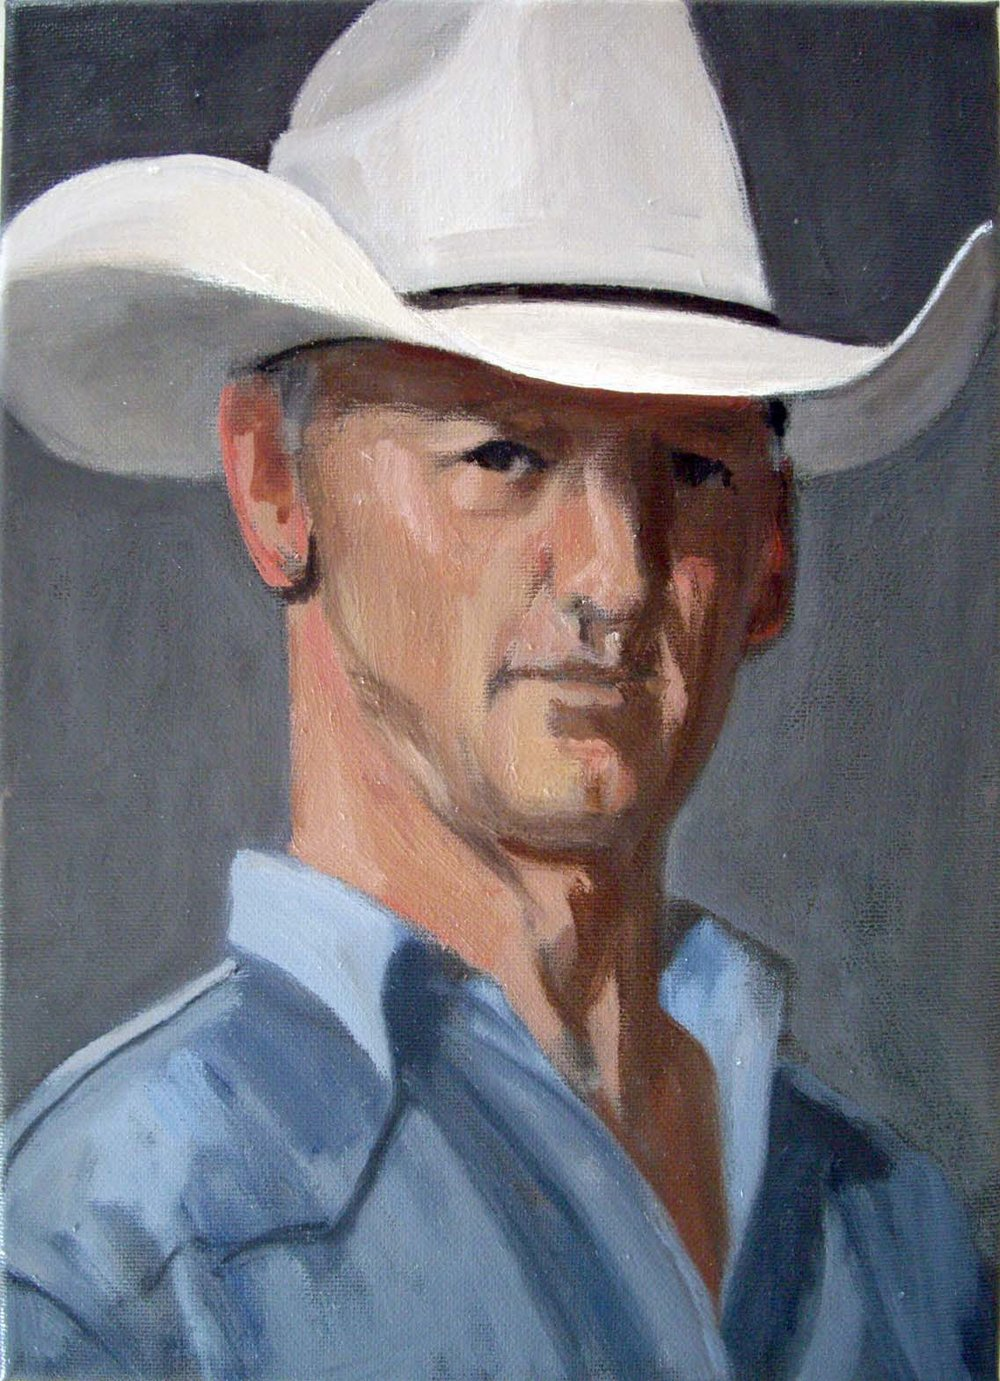 Lucky Little Cowboy, Oil on Canvas                                                                    Richard McWhannell